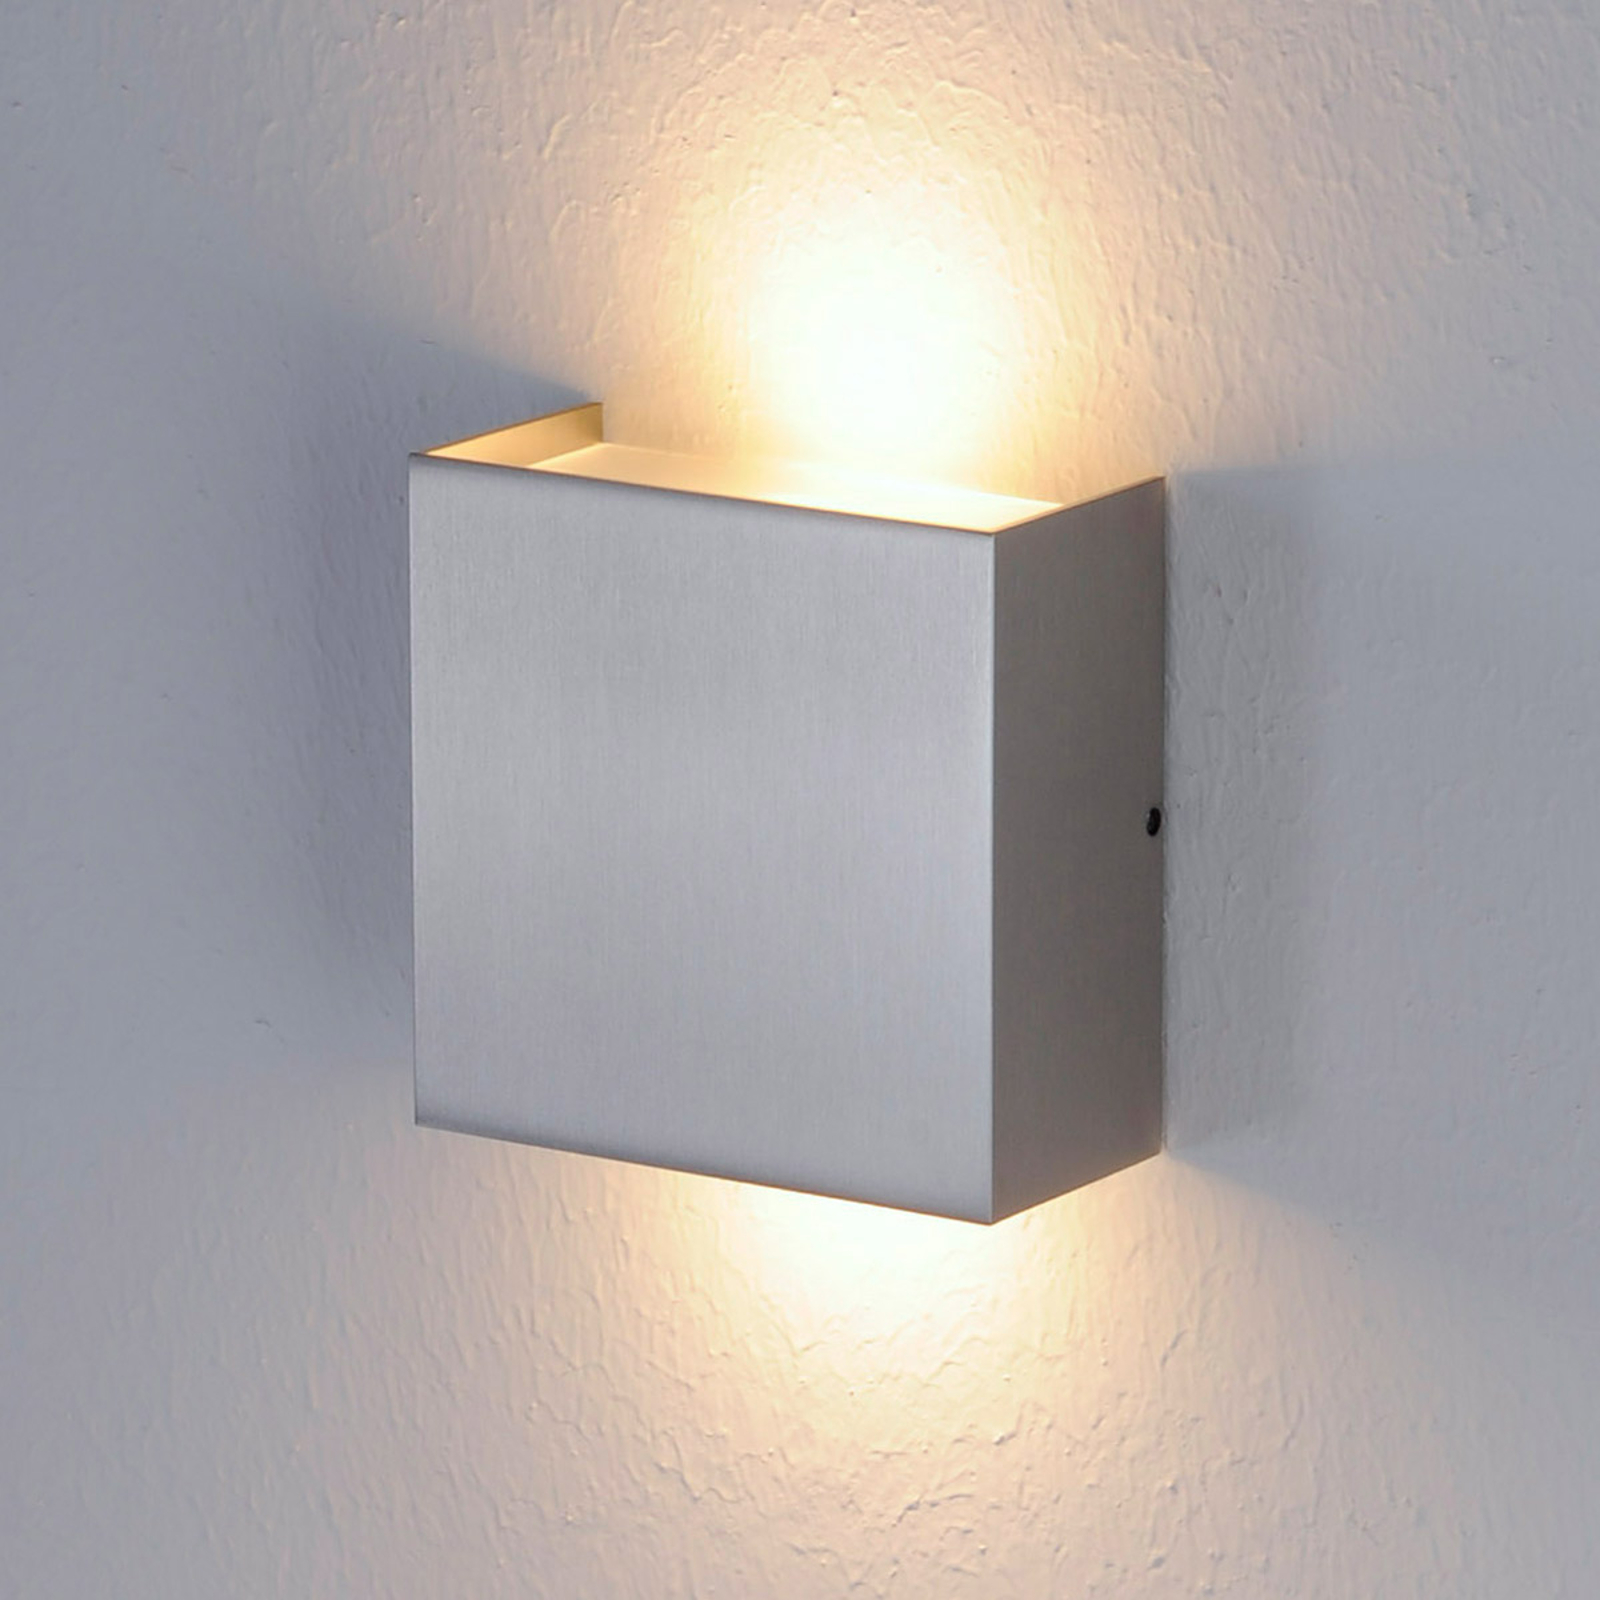 Applique LED Mira à finition nickel mat